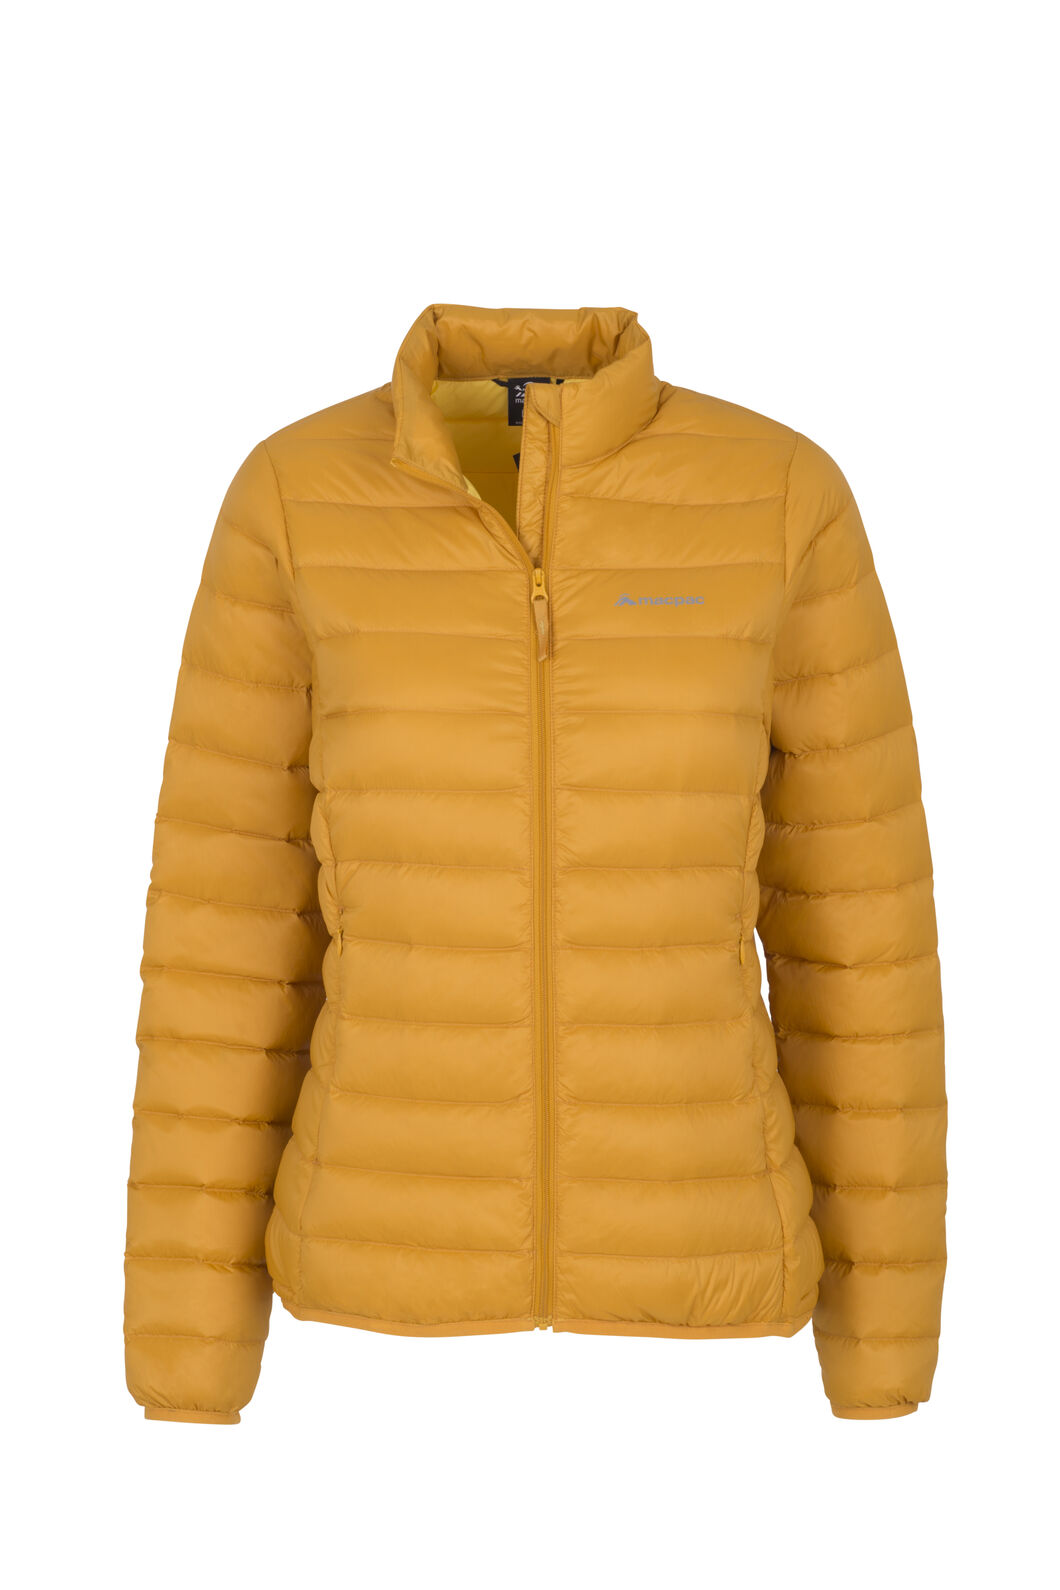 Macpac Uber Light Down Jacket - Women's, Golden Yellow, hi-res